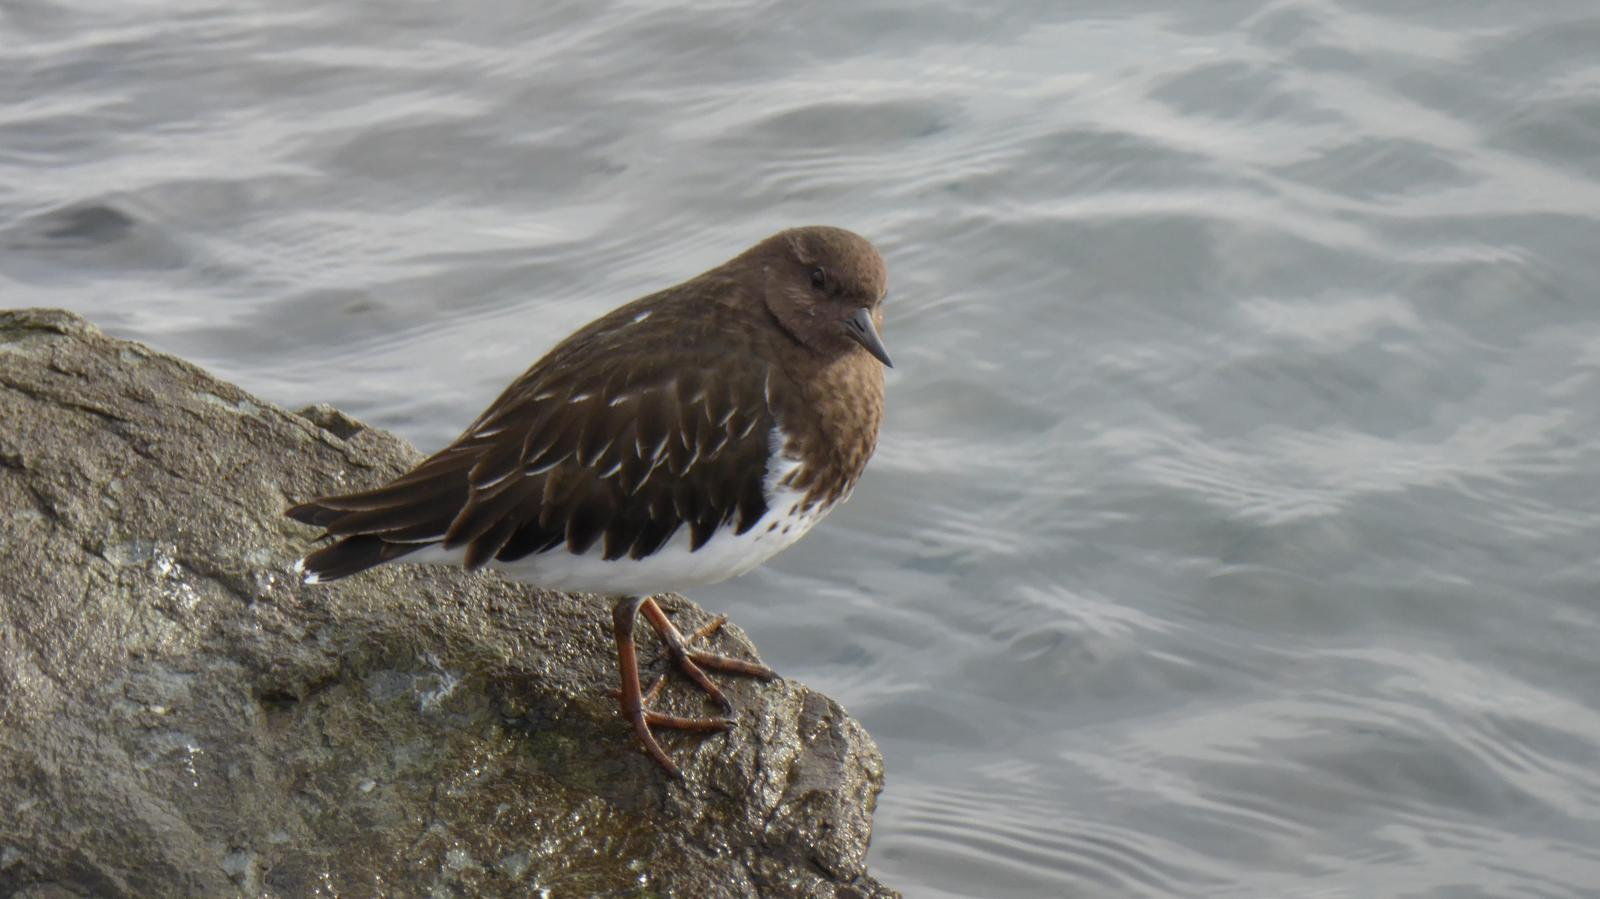 Black Turnstone Photo by Daliel Leite